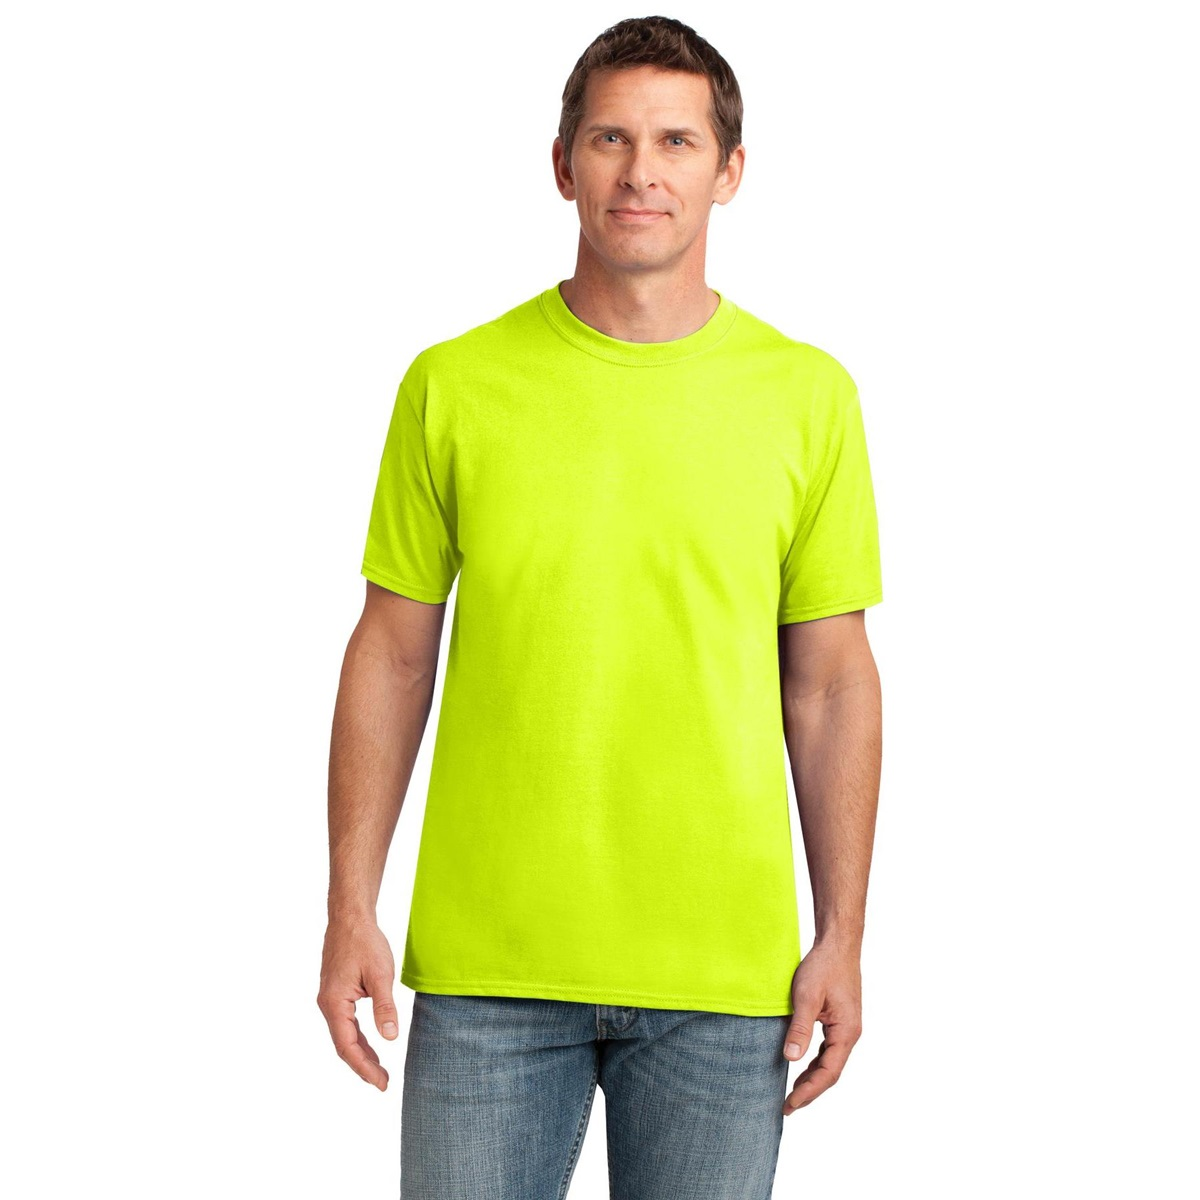 Gildan 42000 performance t shirt safety green for What is a performance t shirt